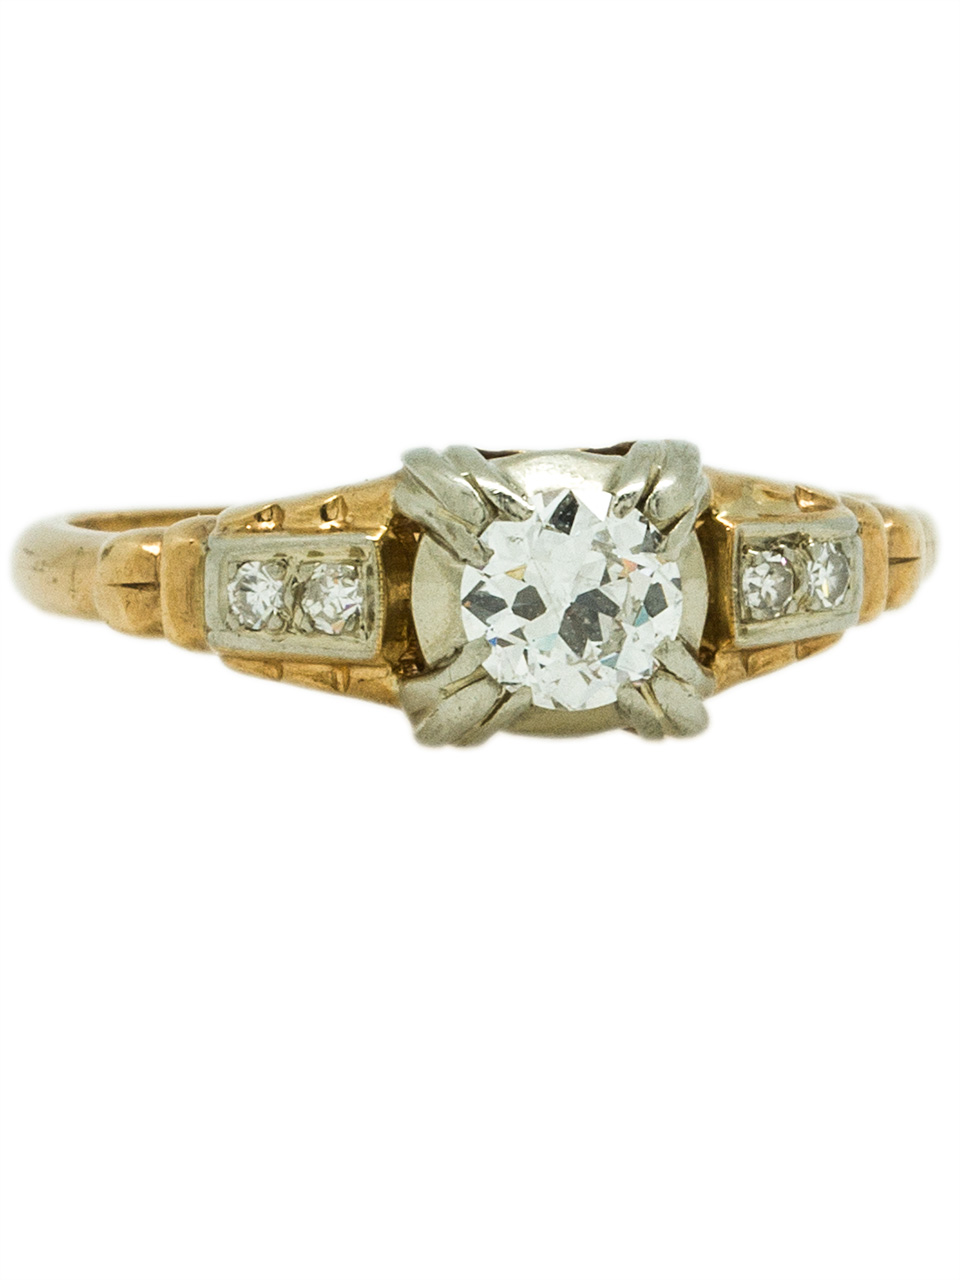 14K Retro Diamond Engagement Ring, circa 1940s